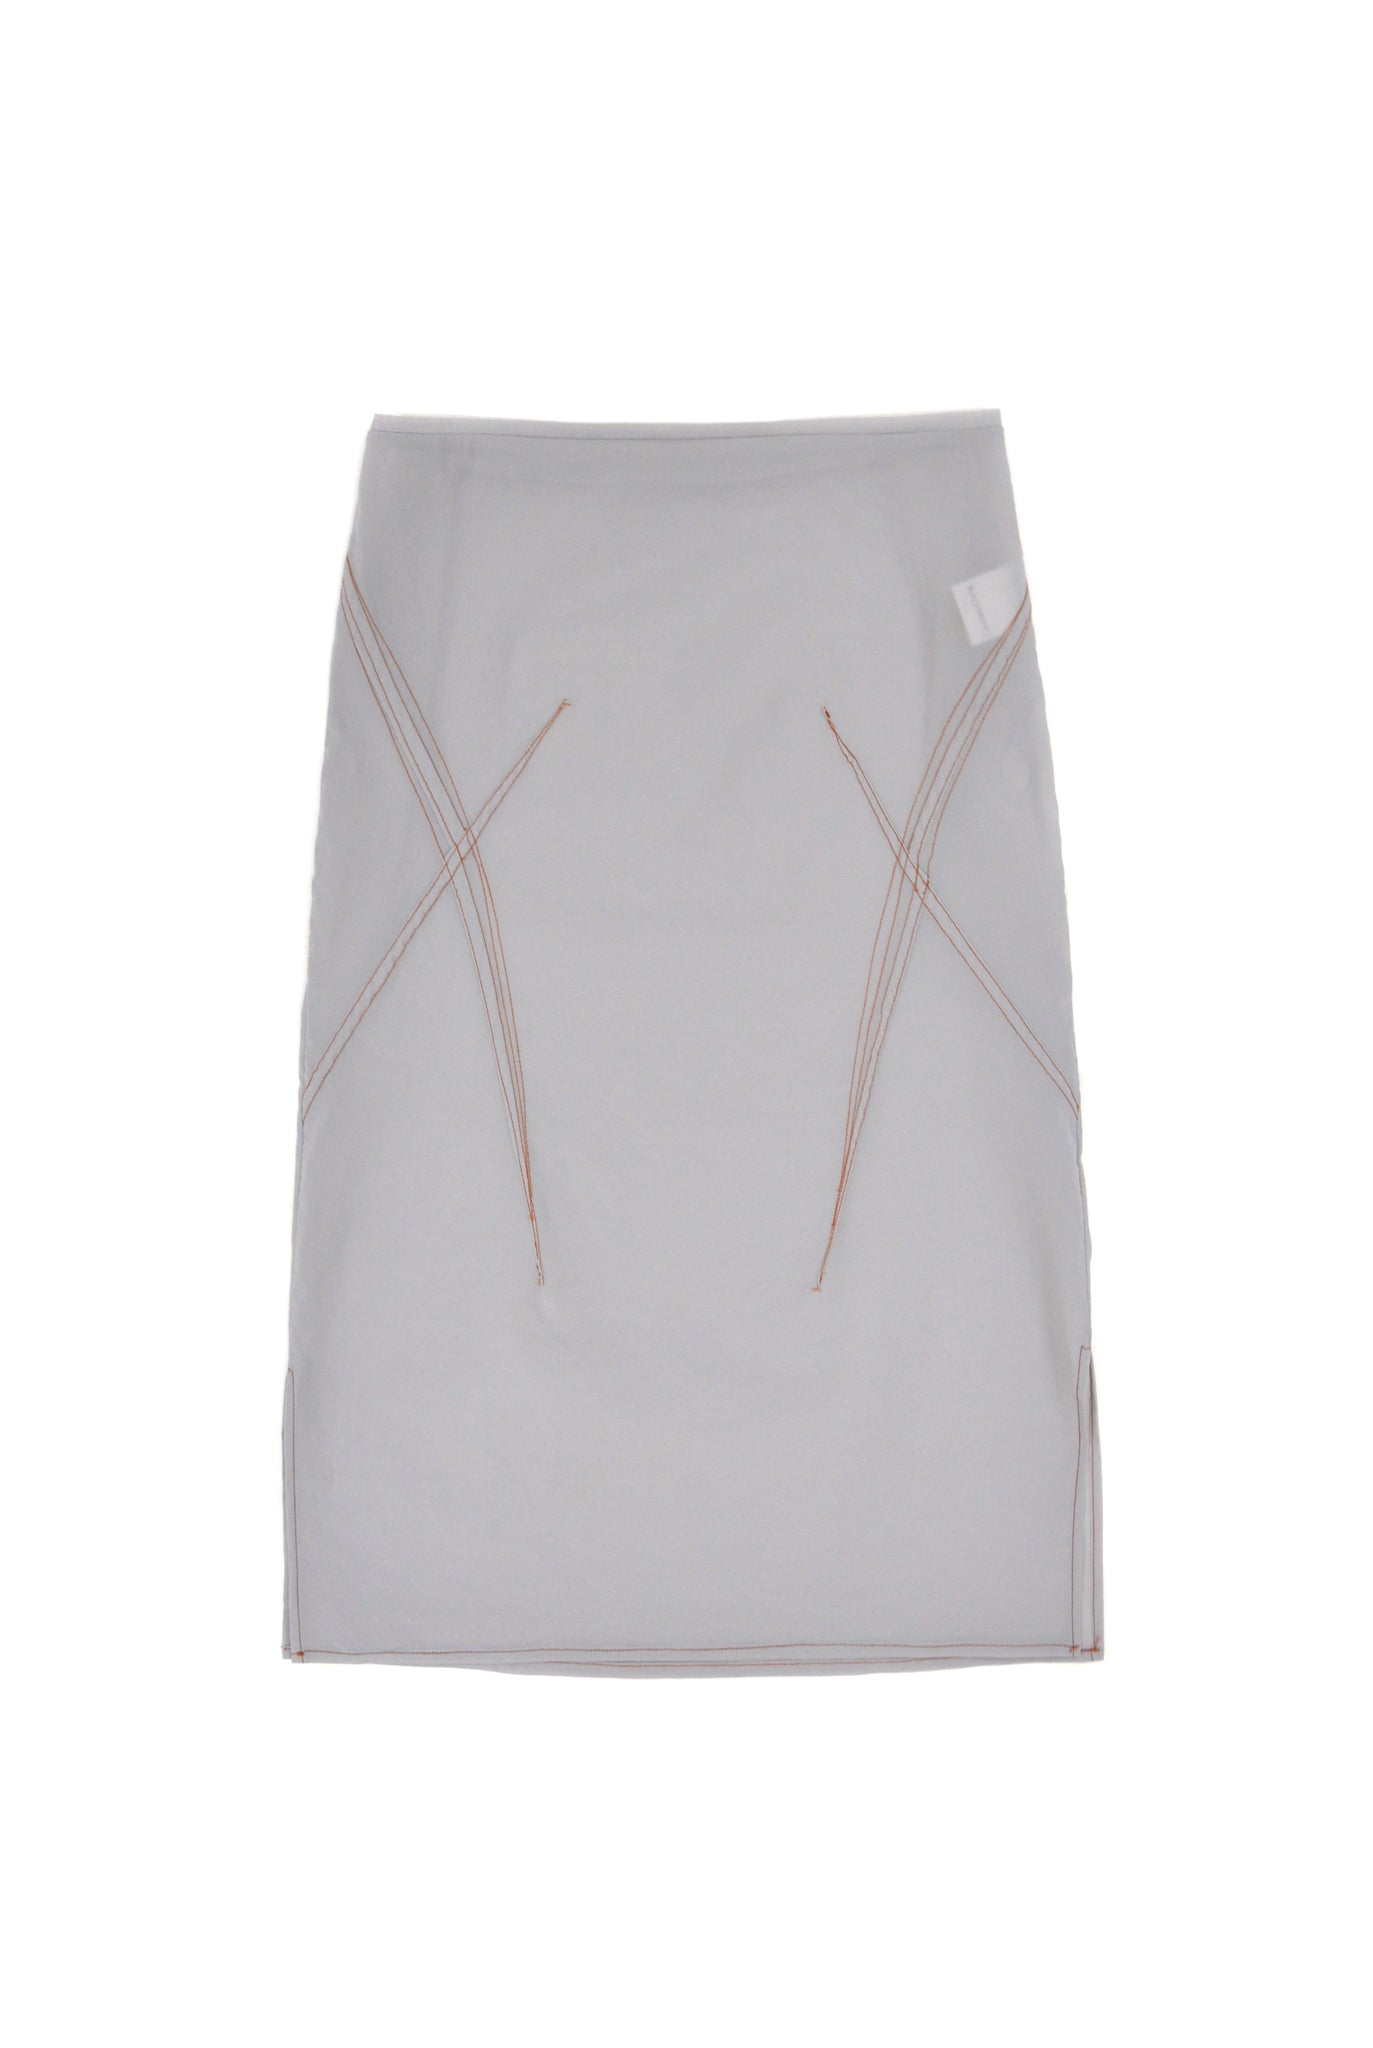 Gauntlett Cheng Sheer Darted Skirt